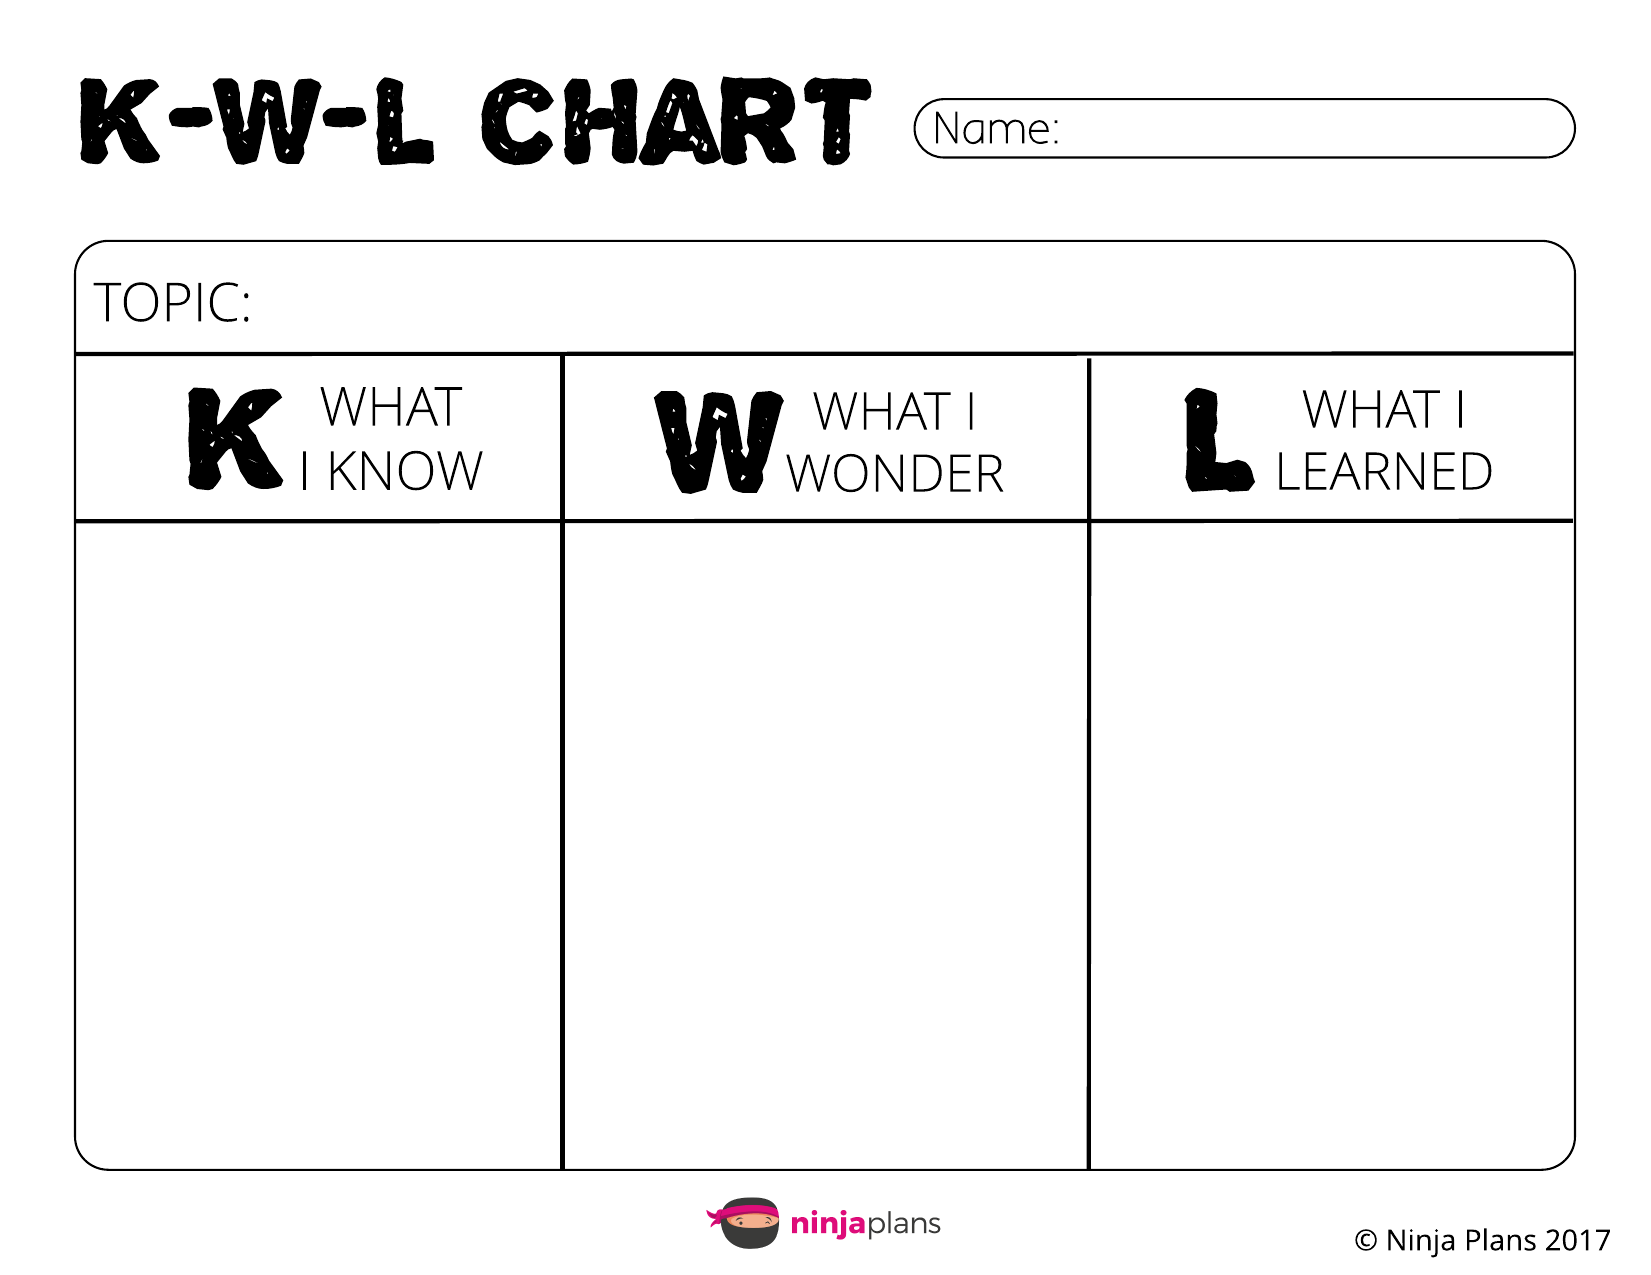 image regarding Kwl Chart Printable called KWL Chart by means of ninjaplans · Ninja Options